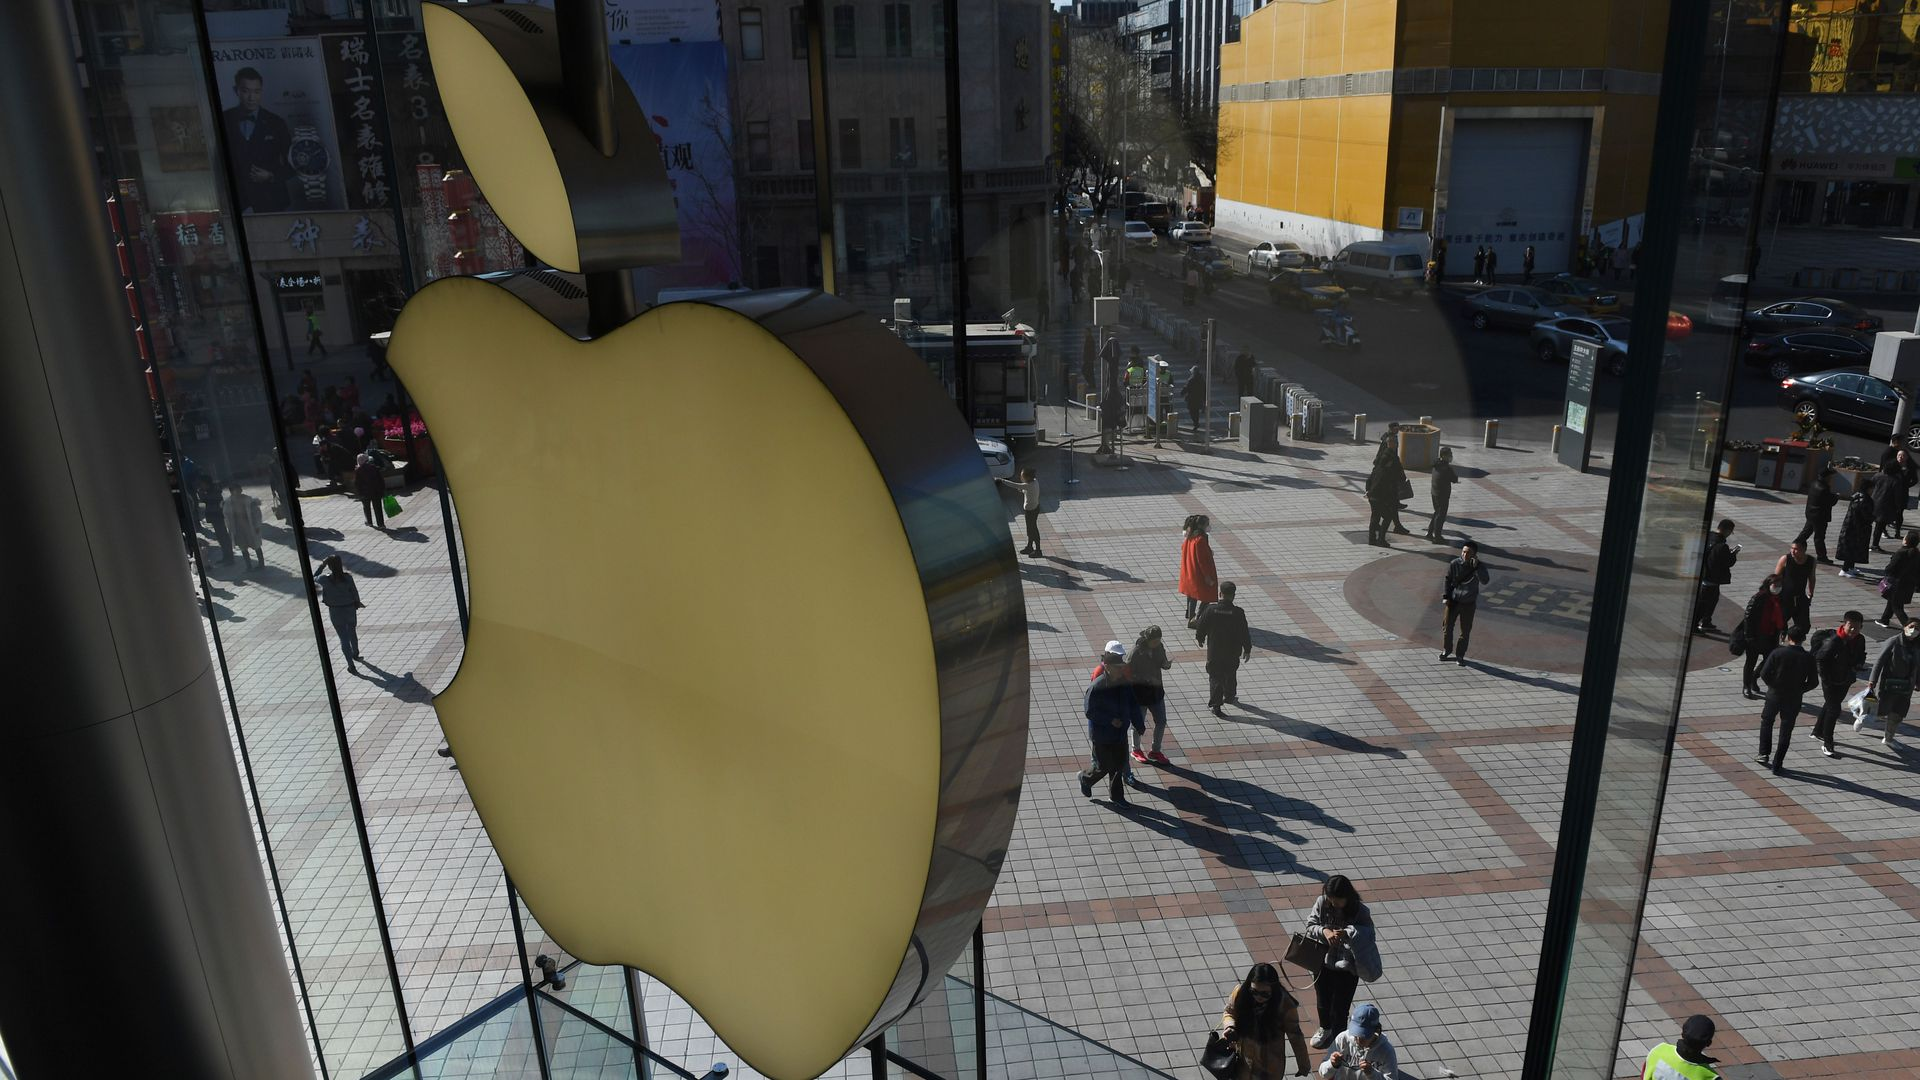 In this image, the Apple logo is displayed over a city walkway with a few pedestrians.